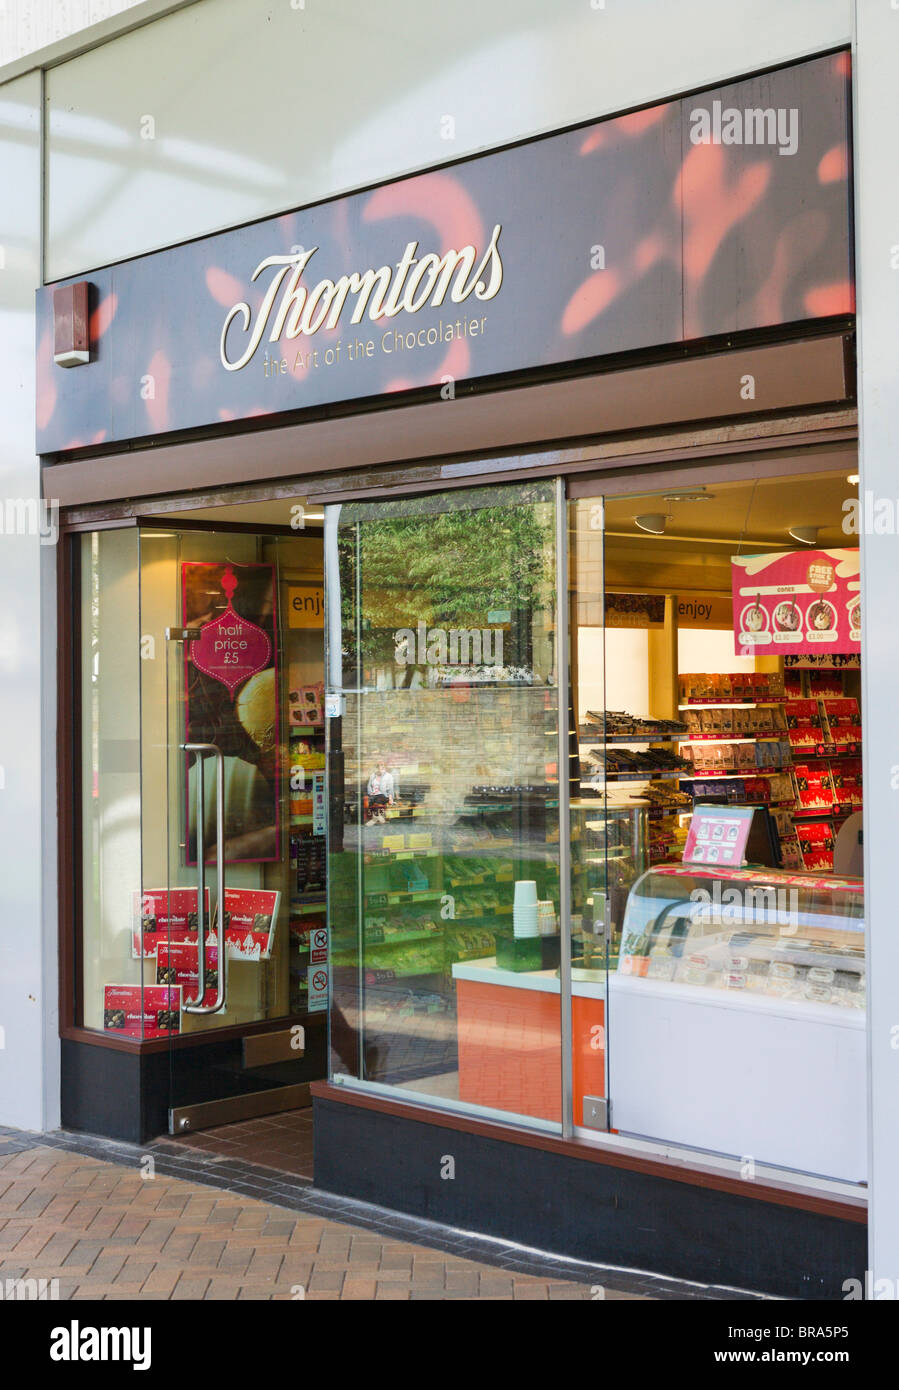 Thorntons chocolate shop in Huddersfield town centre, West Yorkshire, England, UK - Stock Image